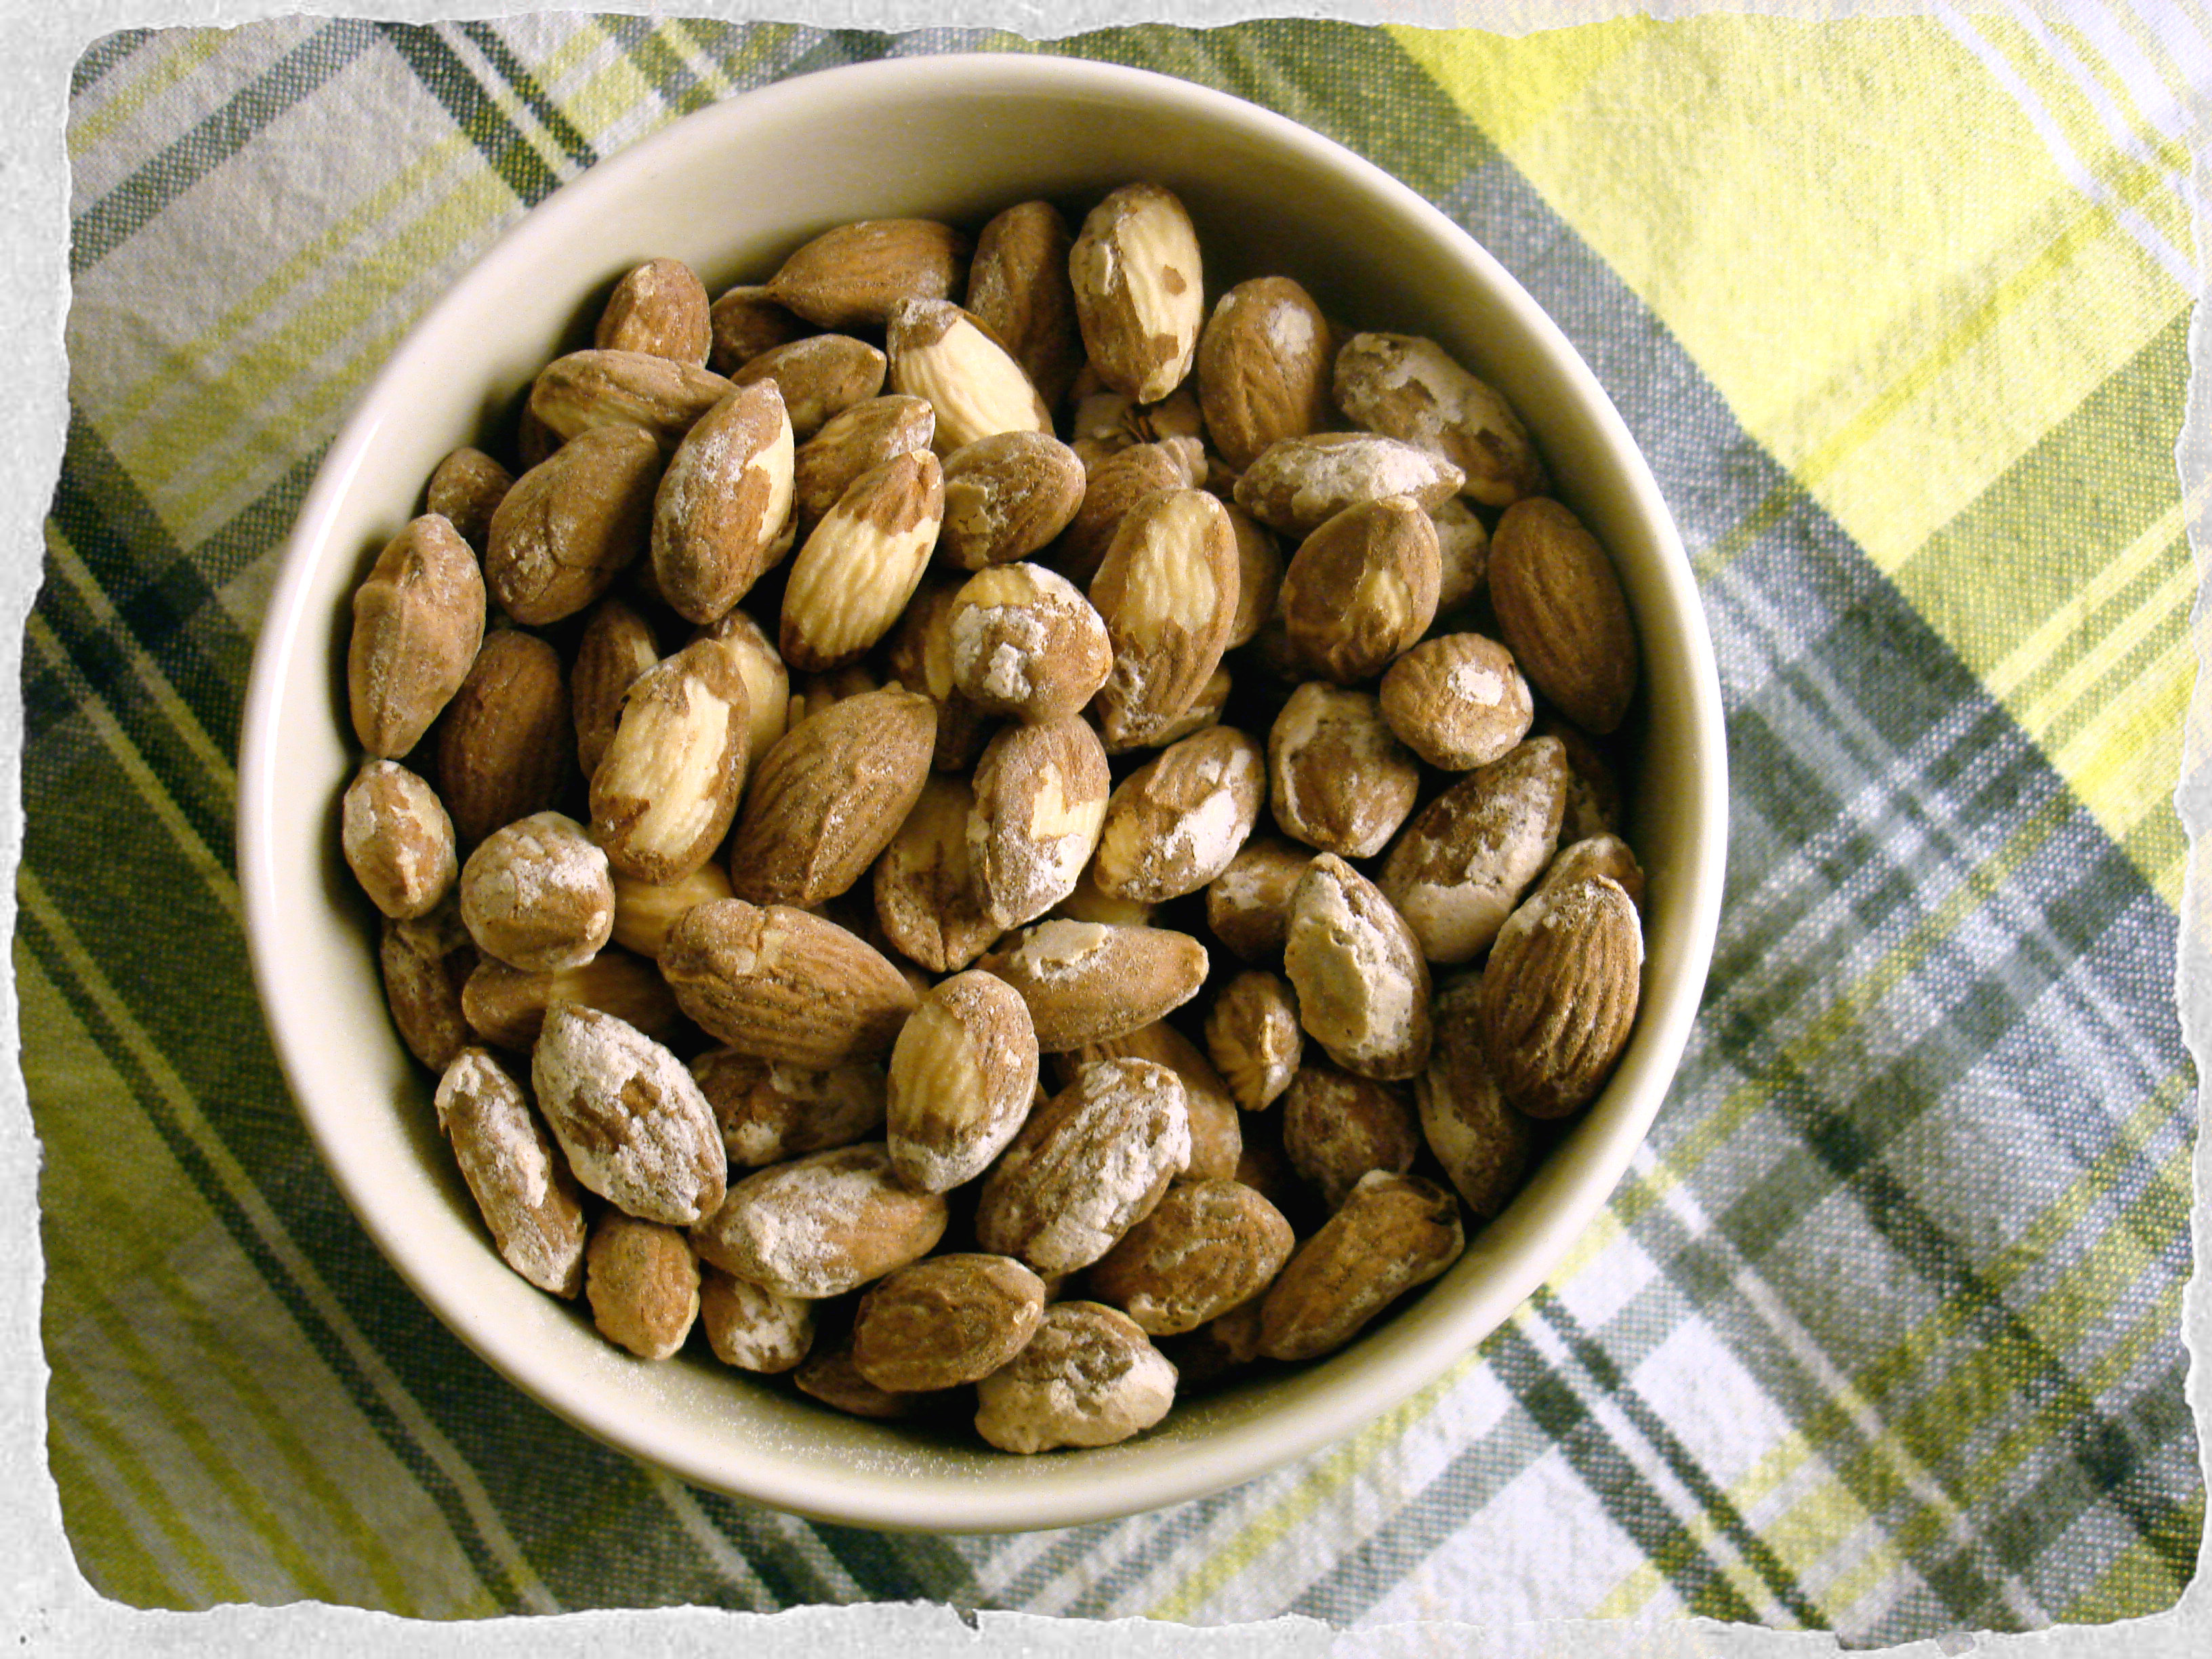 Homemade salted almonds